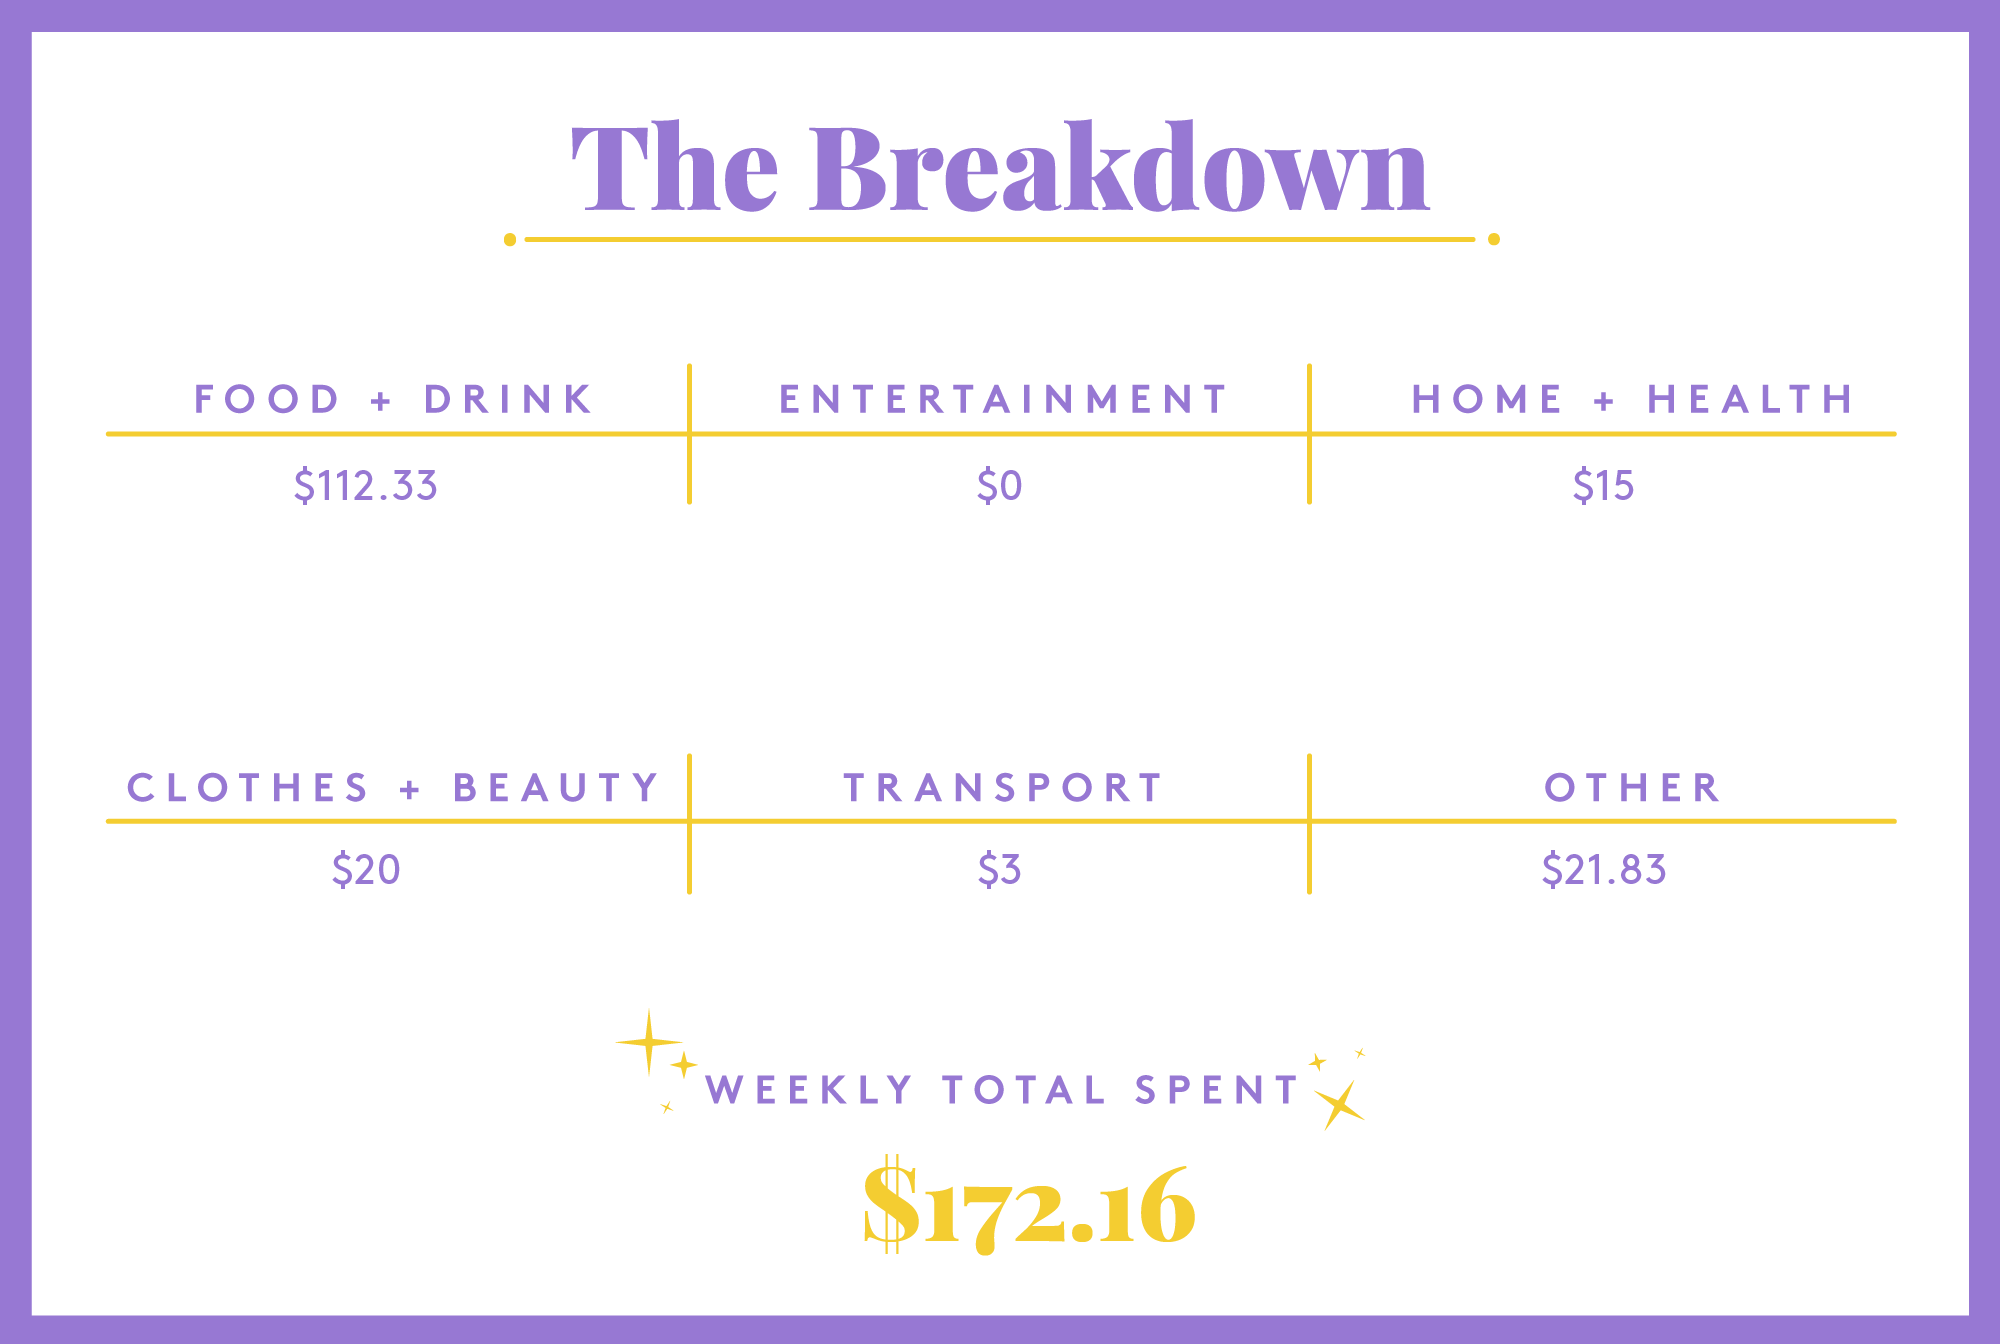 5 Money Diaries From 31 Year Old Women In The U.S.